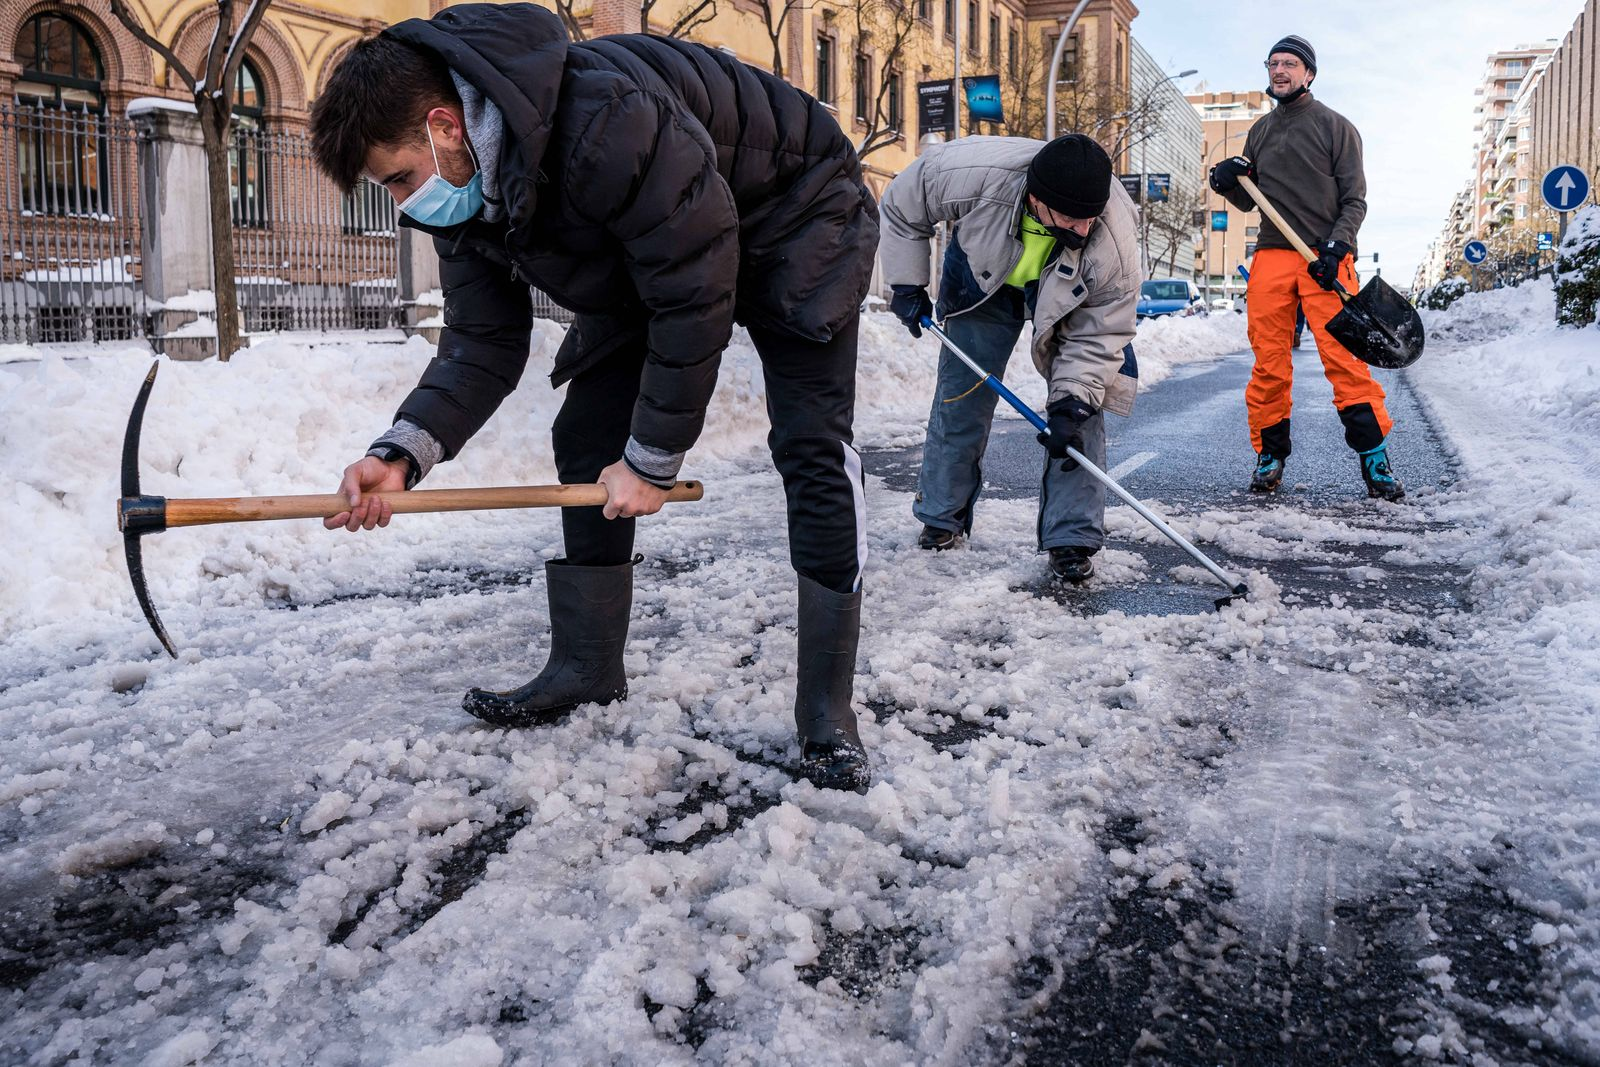 January 10, 2021, Madrid, Spain: Neighbors clearing the snow in the streets that connect with the Gregorio Maranon Hosp